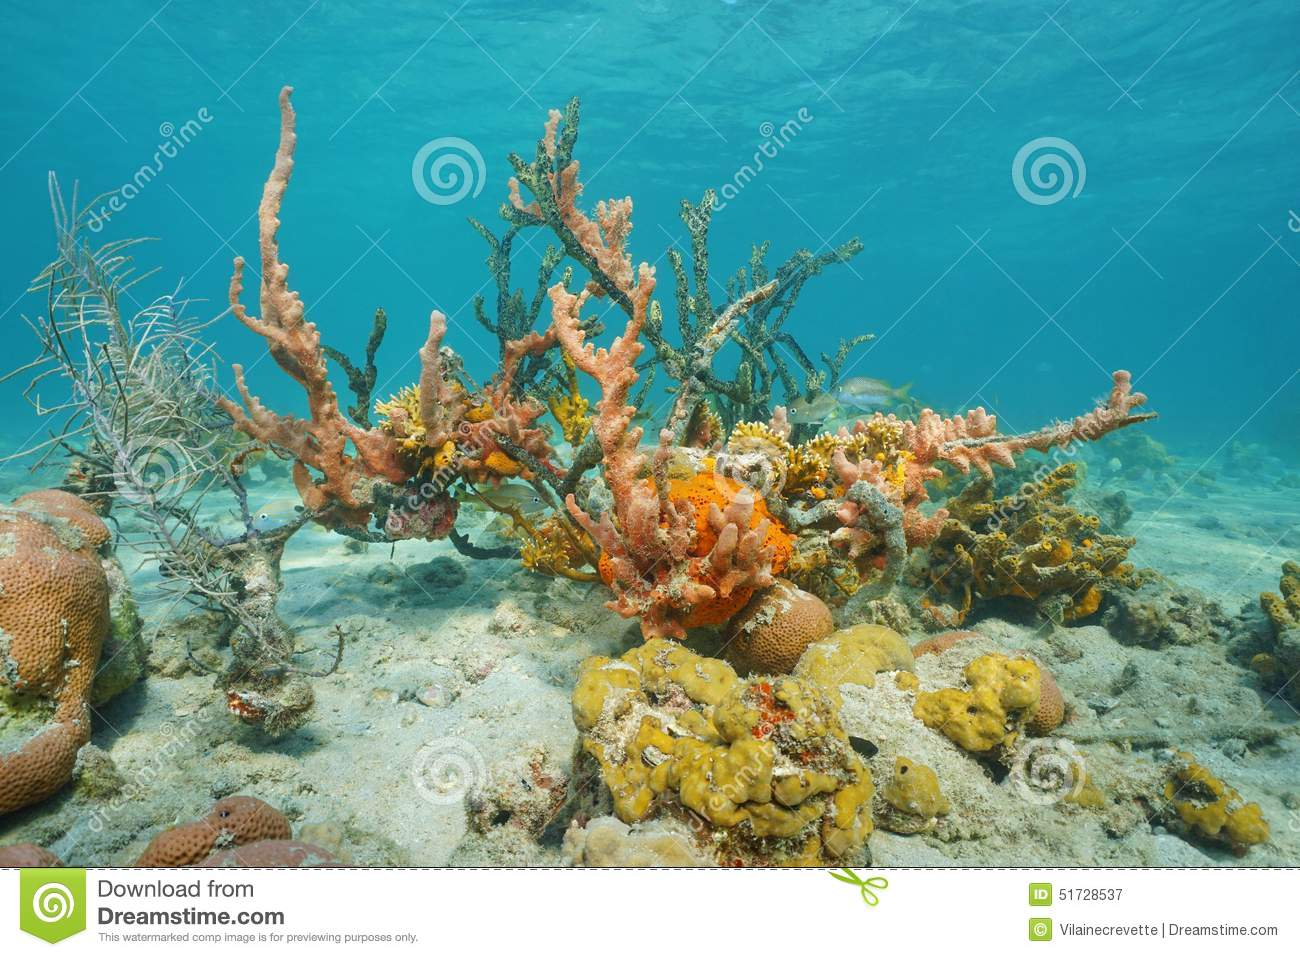 ANDHRA PEOPLES BEAT: COLORFUL MARINE LIFE OF INDONESIA |Colorful Underwater Life